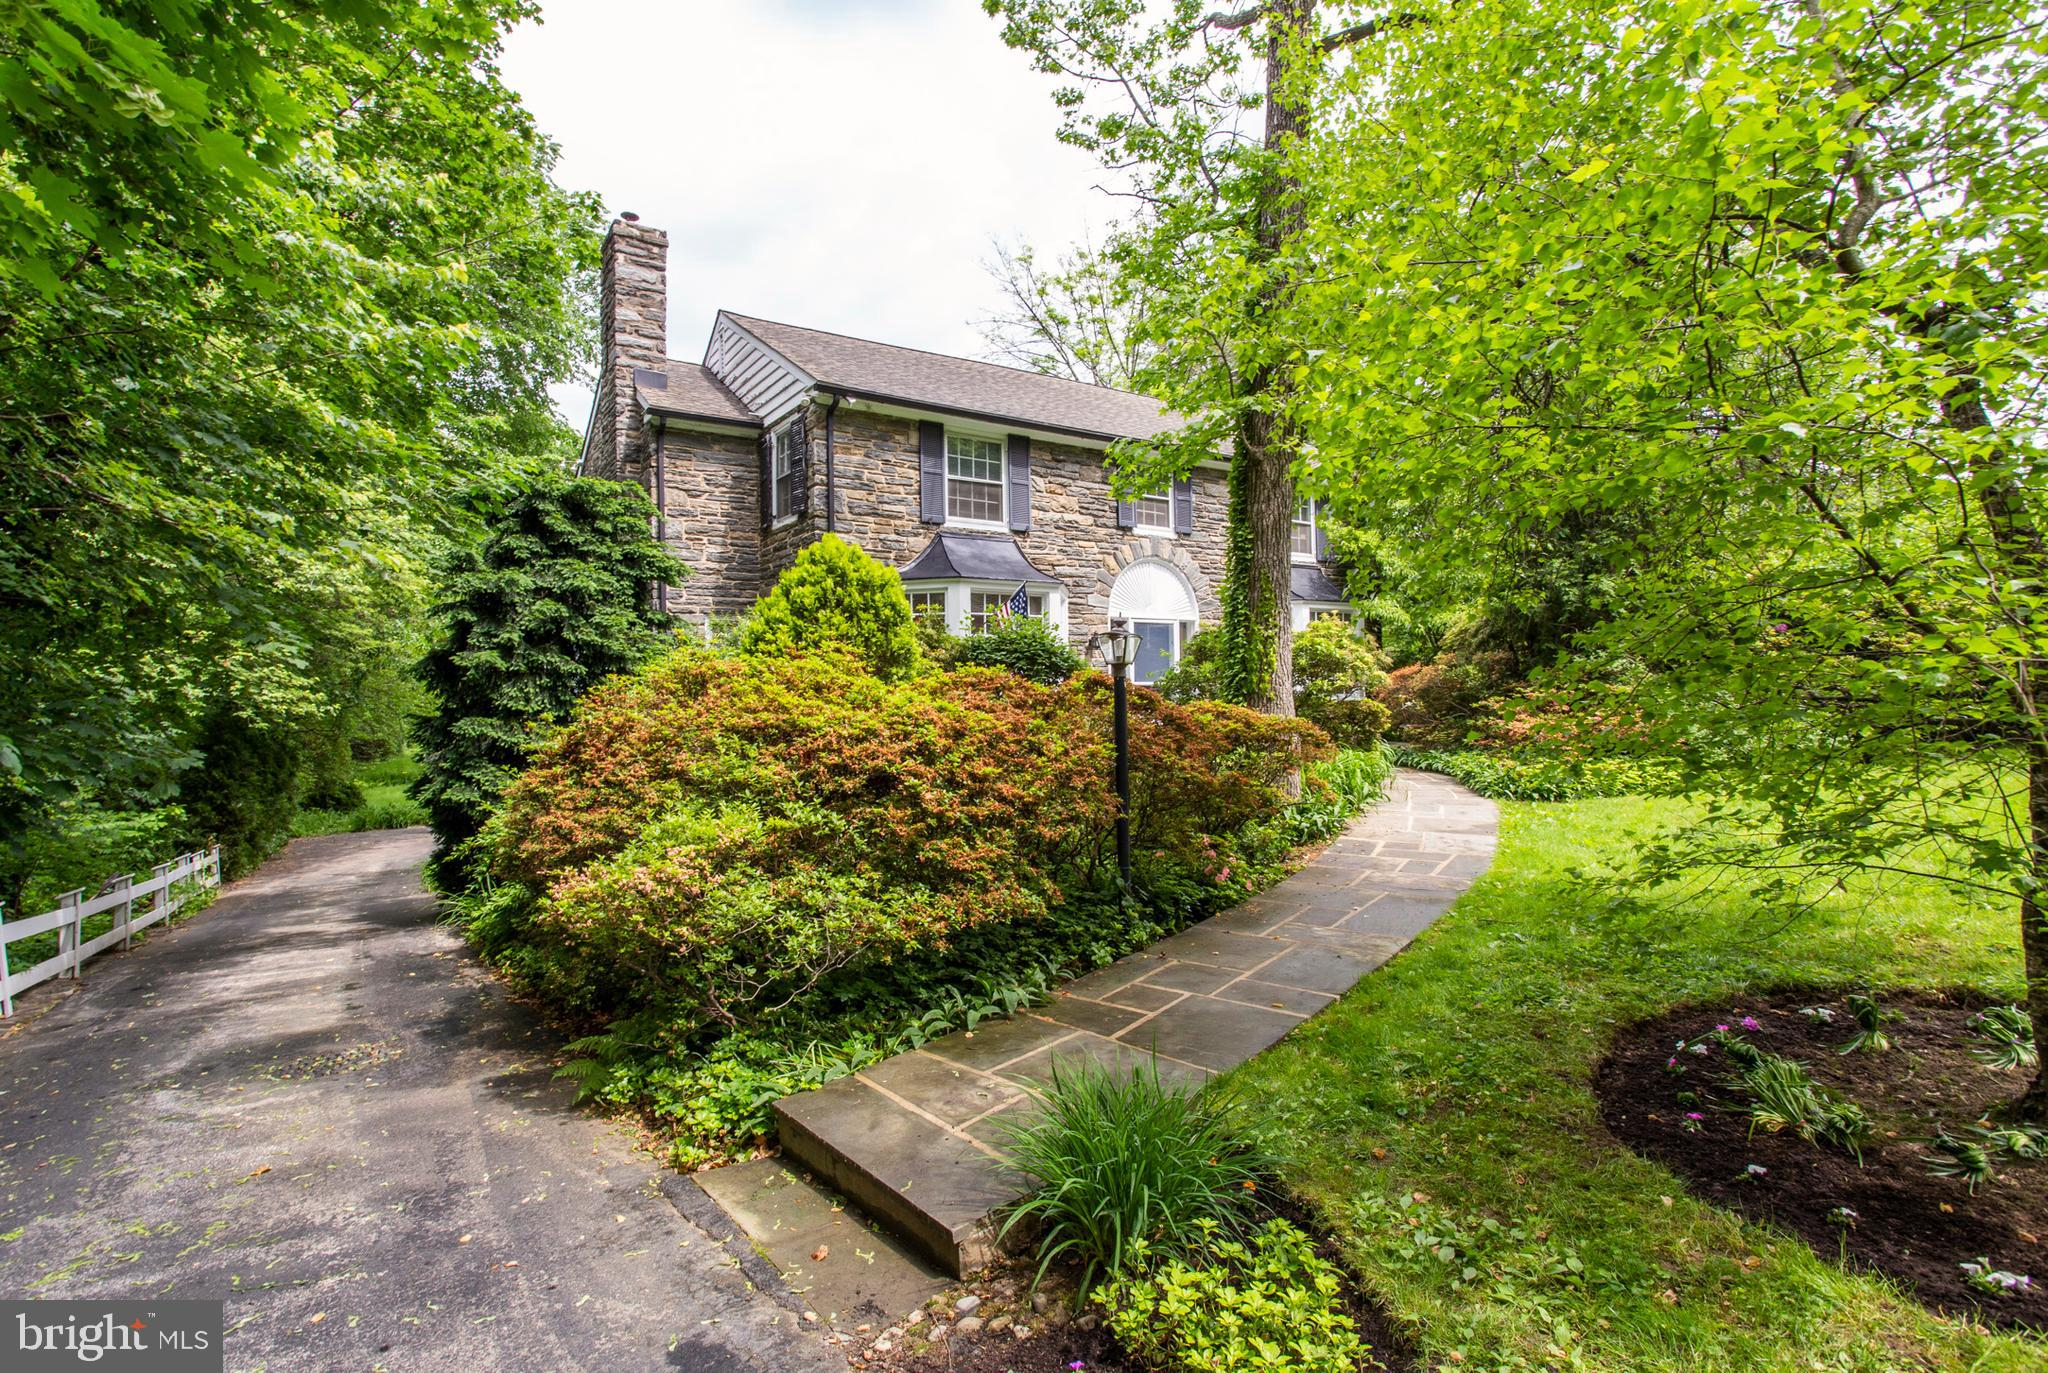 351 N LATCHES LANE, MERION STATION, PA 19066